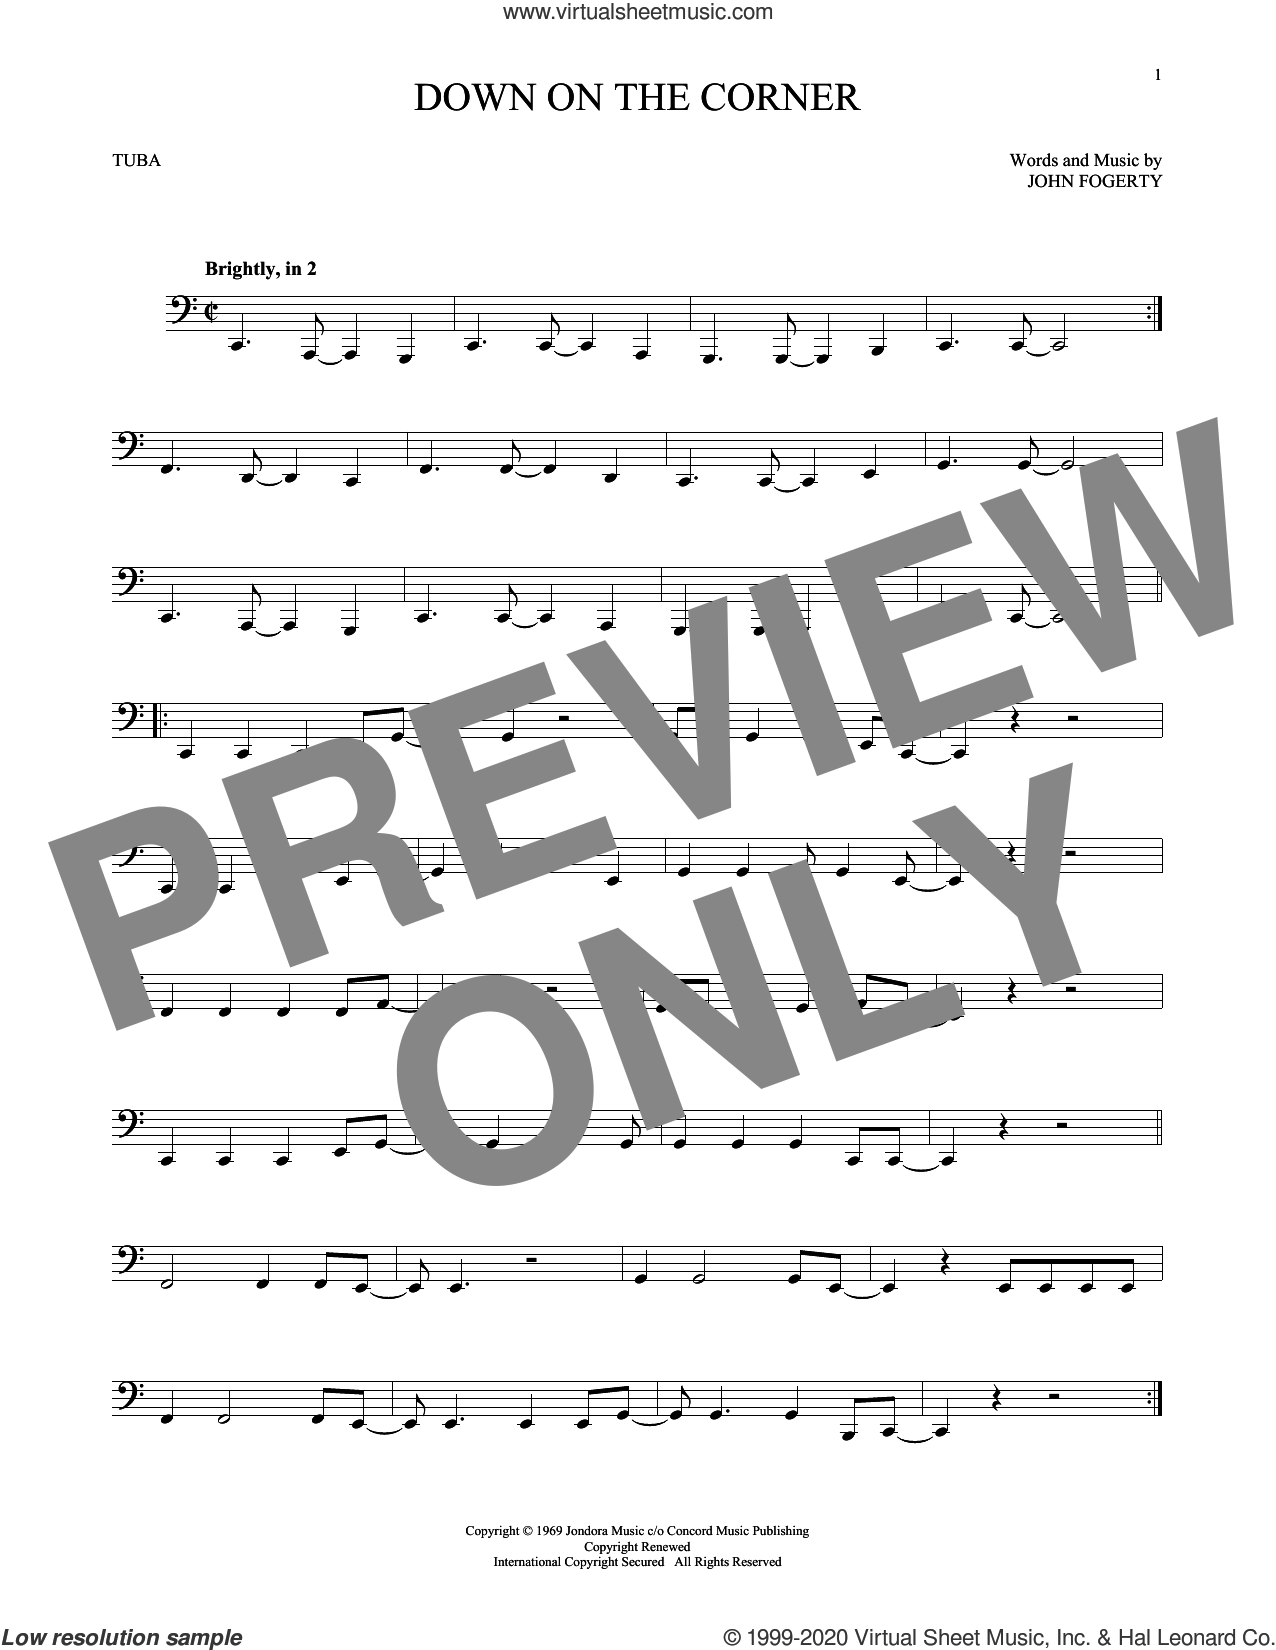 Down On The Corner sheet music for Tuba Solo (tuba) by Creedence Clearwater Revival and John Fogerty, intermediate skill level